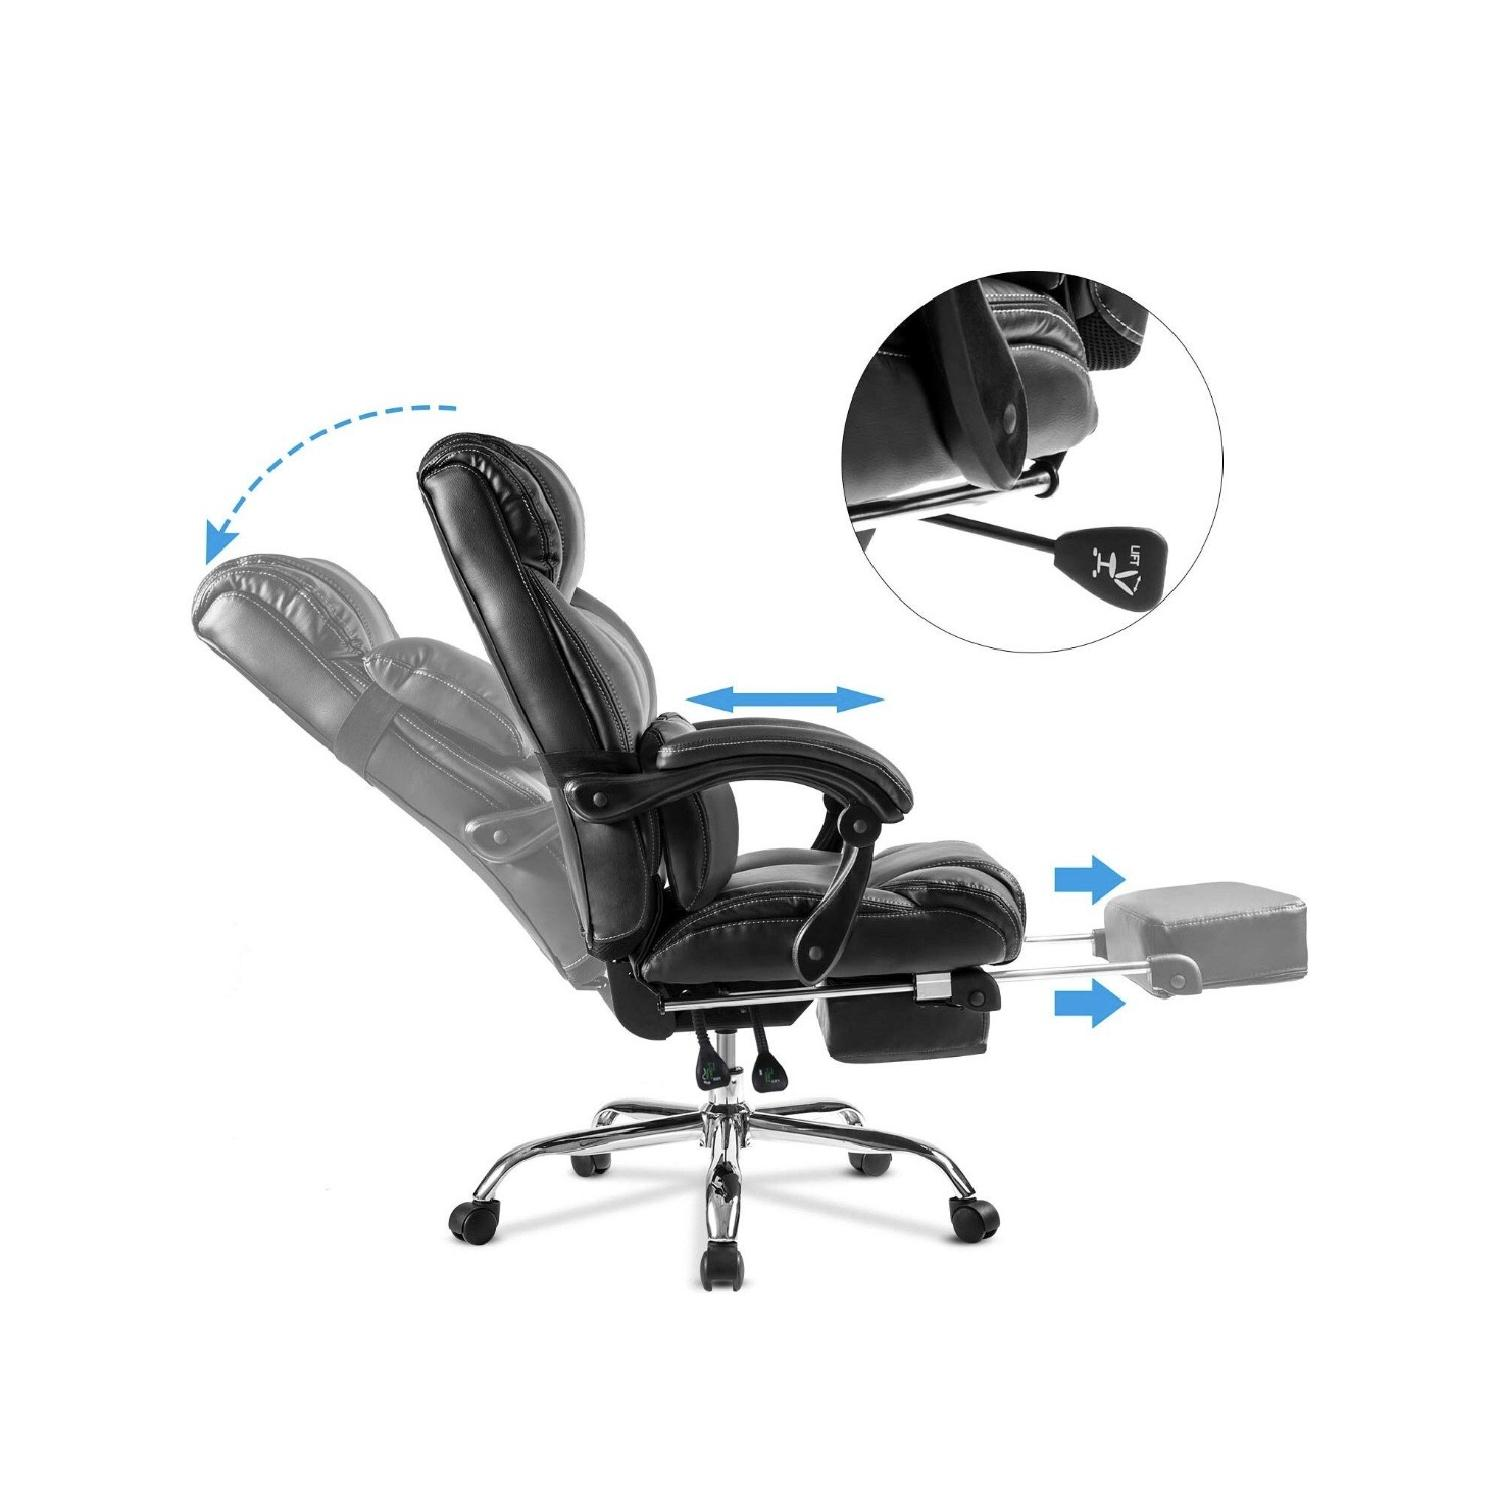 Merax Reclining Office/Gaming Chair-2